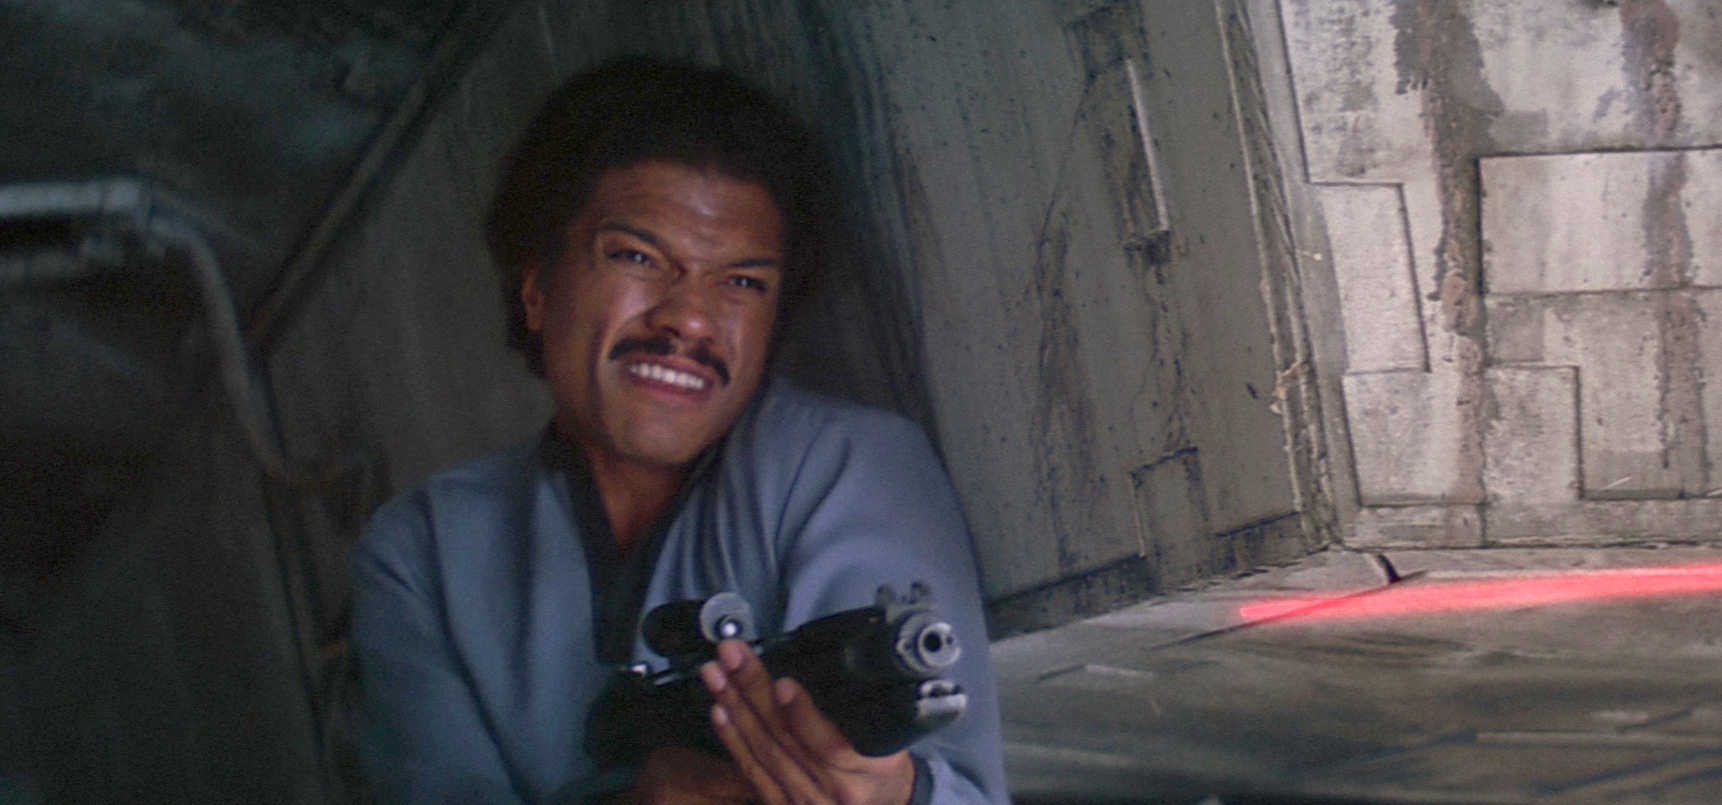 Lando_covering_fire.png